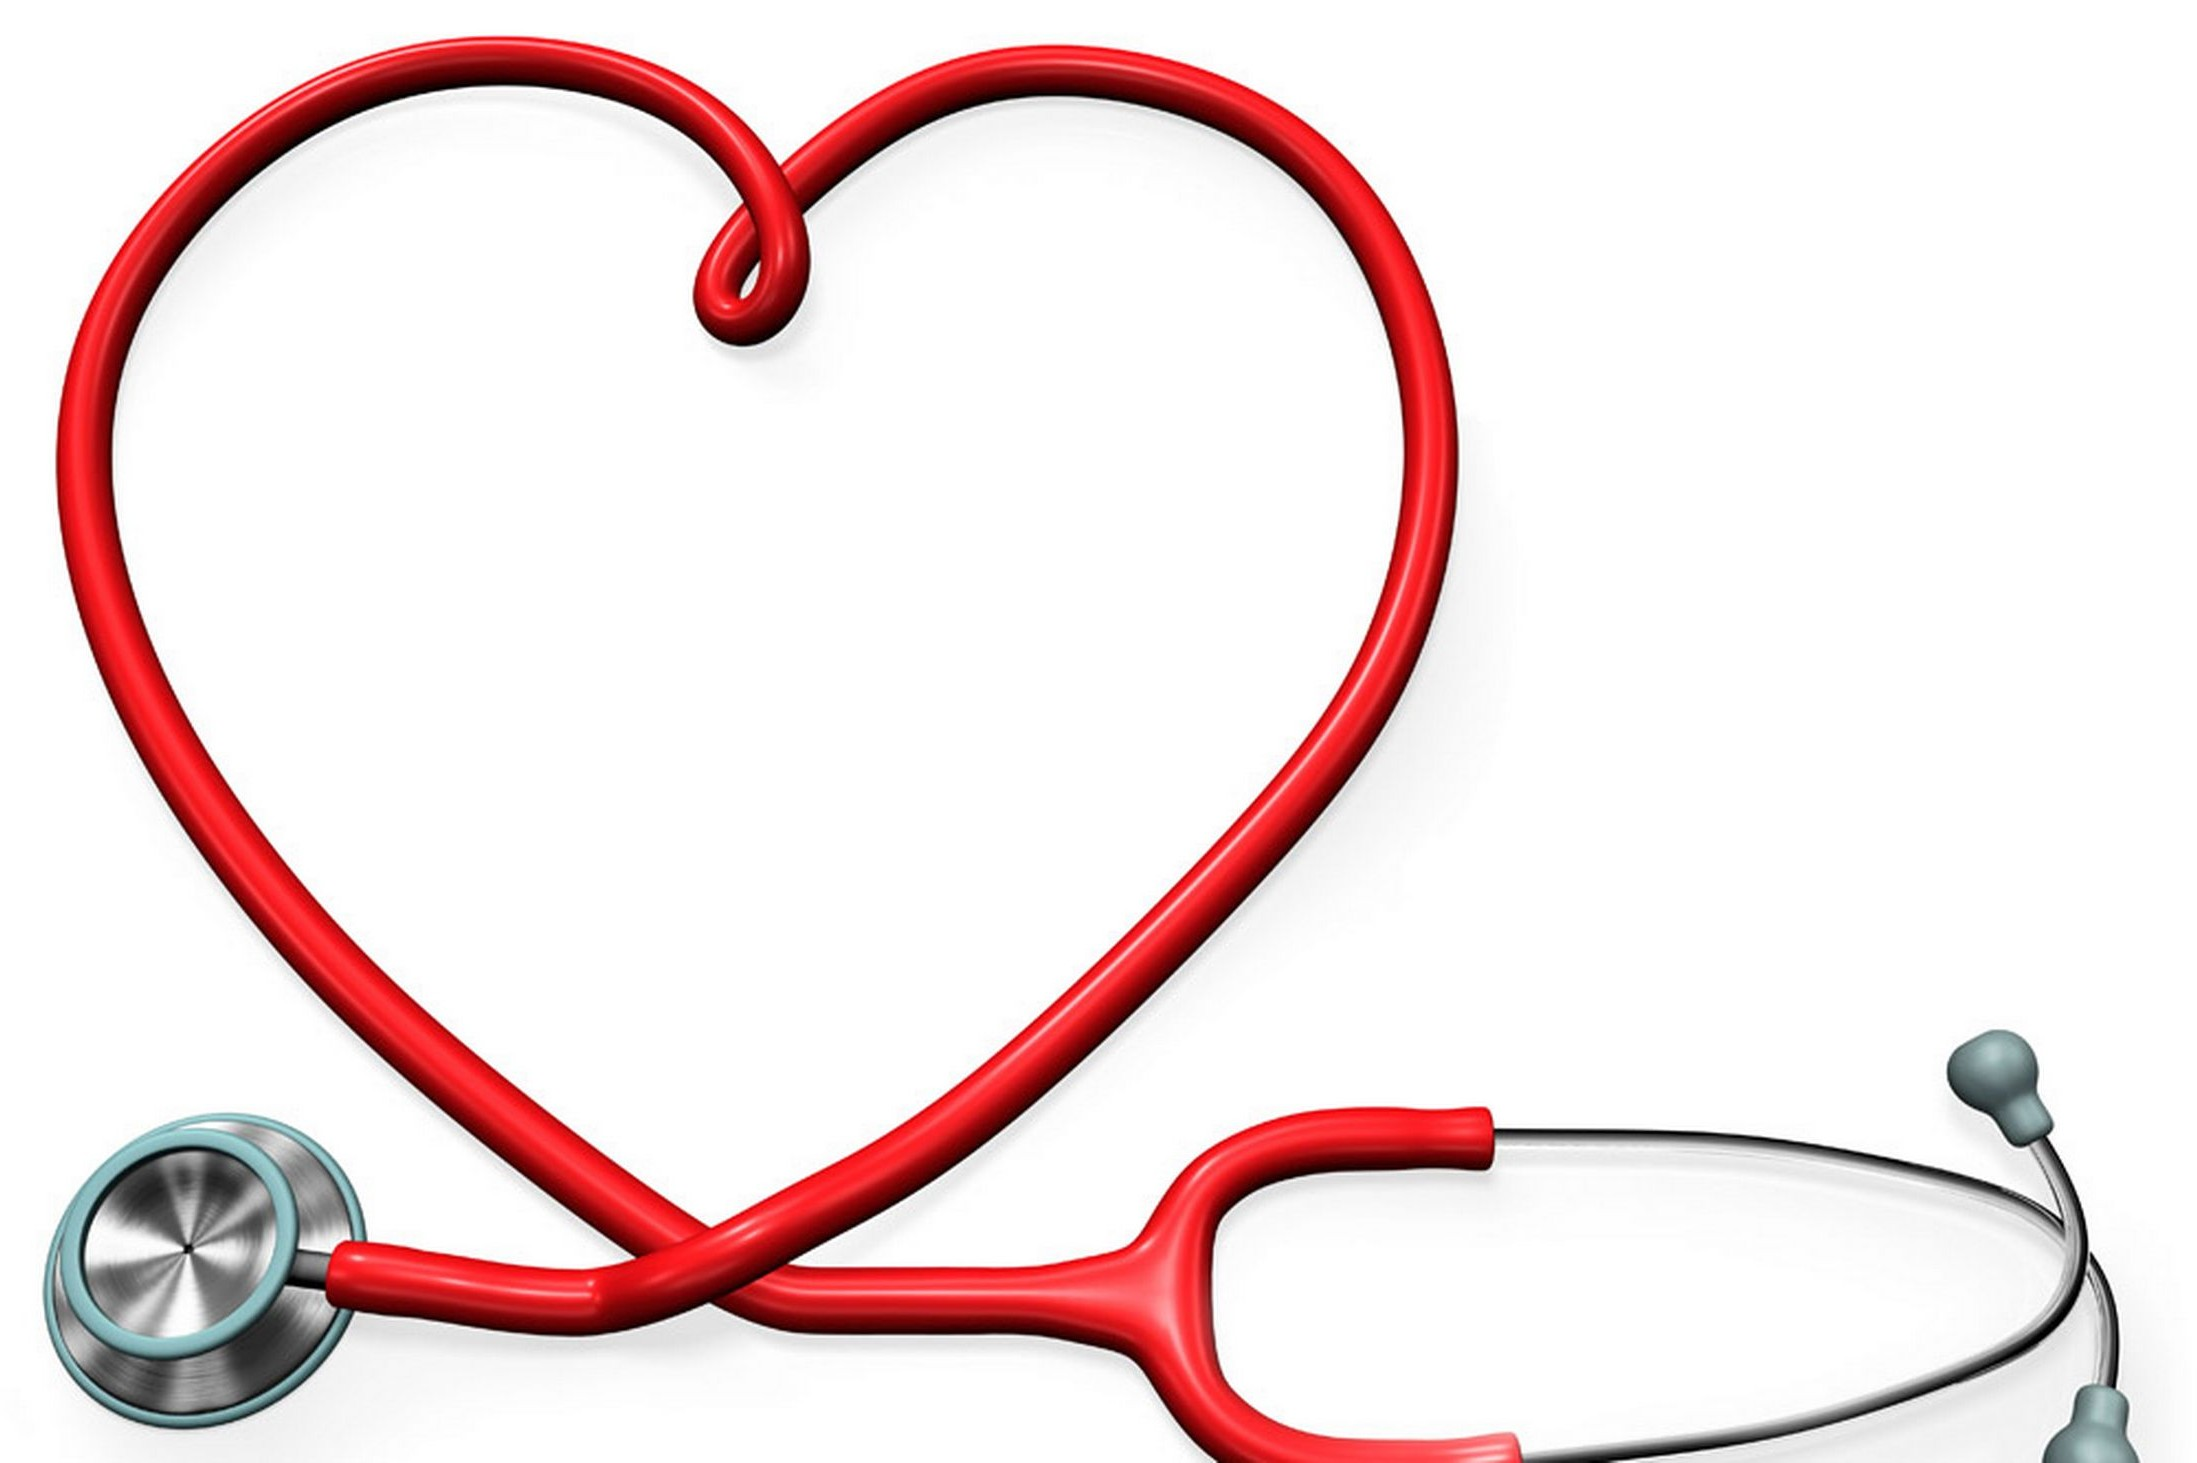 Heart-shaped clipart nurse Stethoscope Related 3 Cliparting clipart